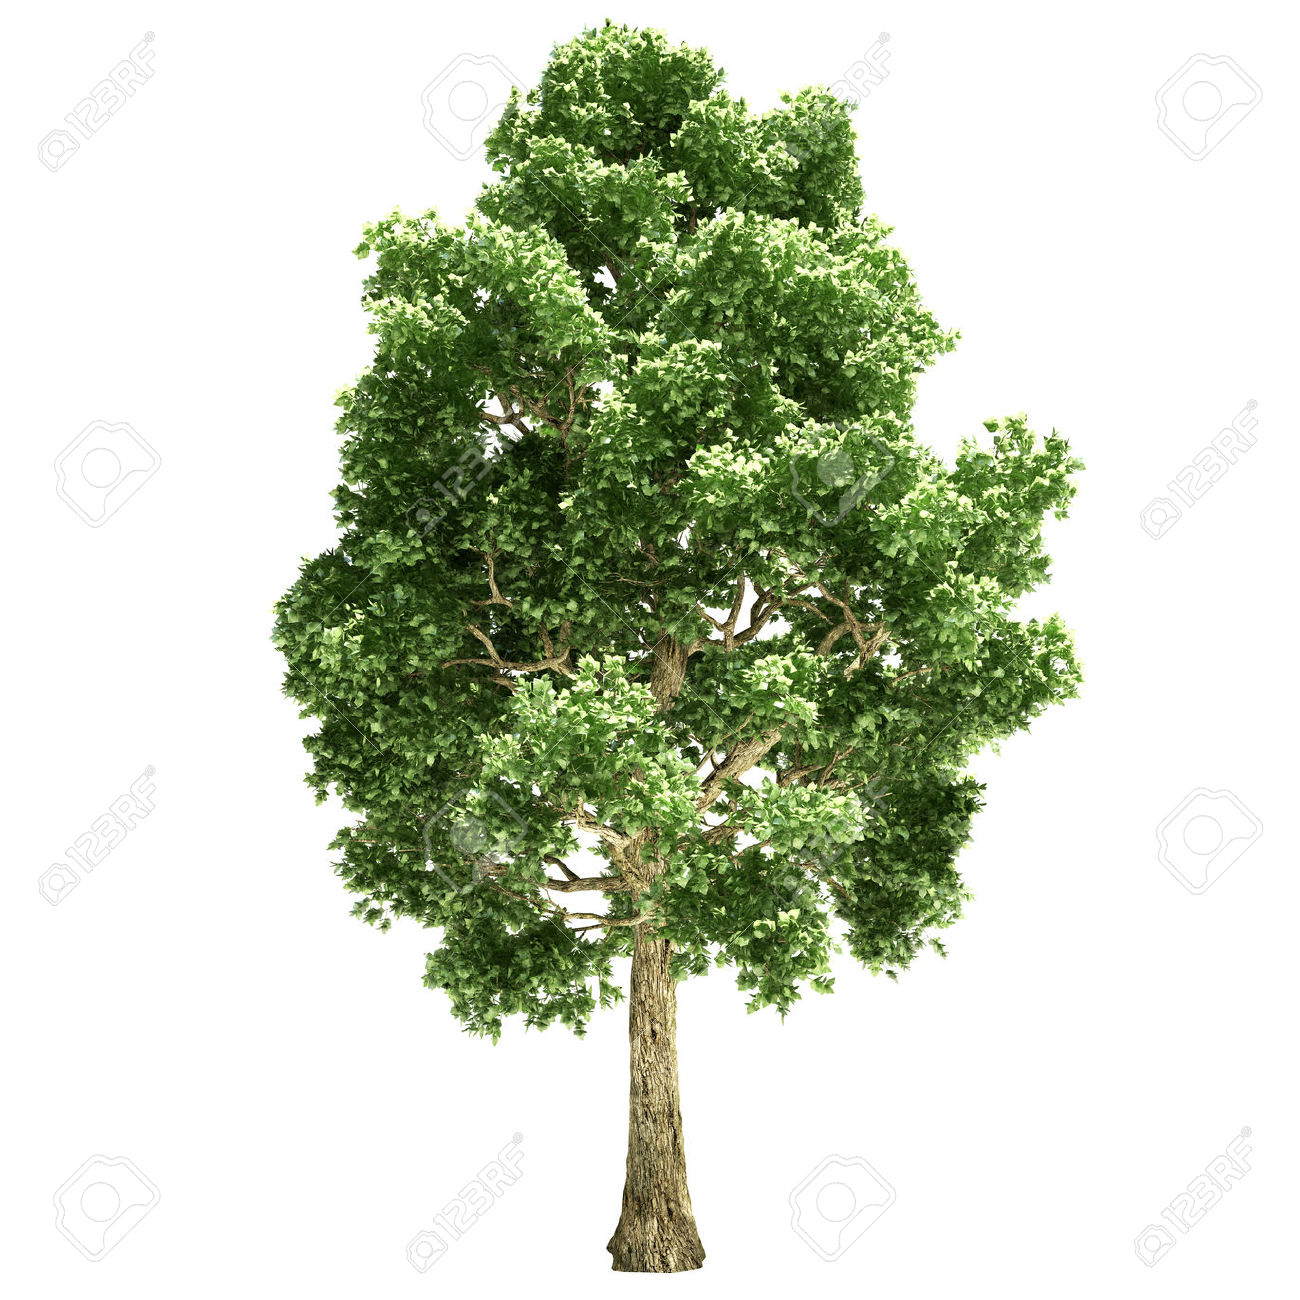 Poplar Tree Isolated On White. Stock Photo, Picture And Royalty.